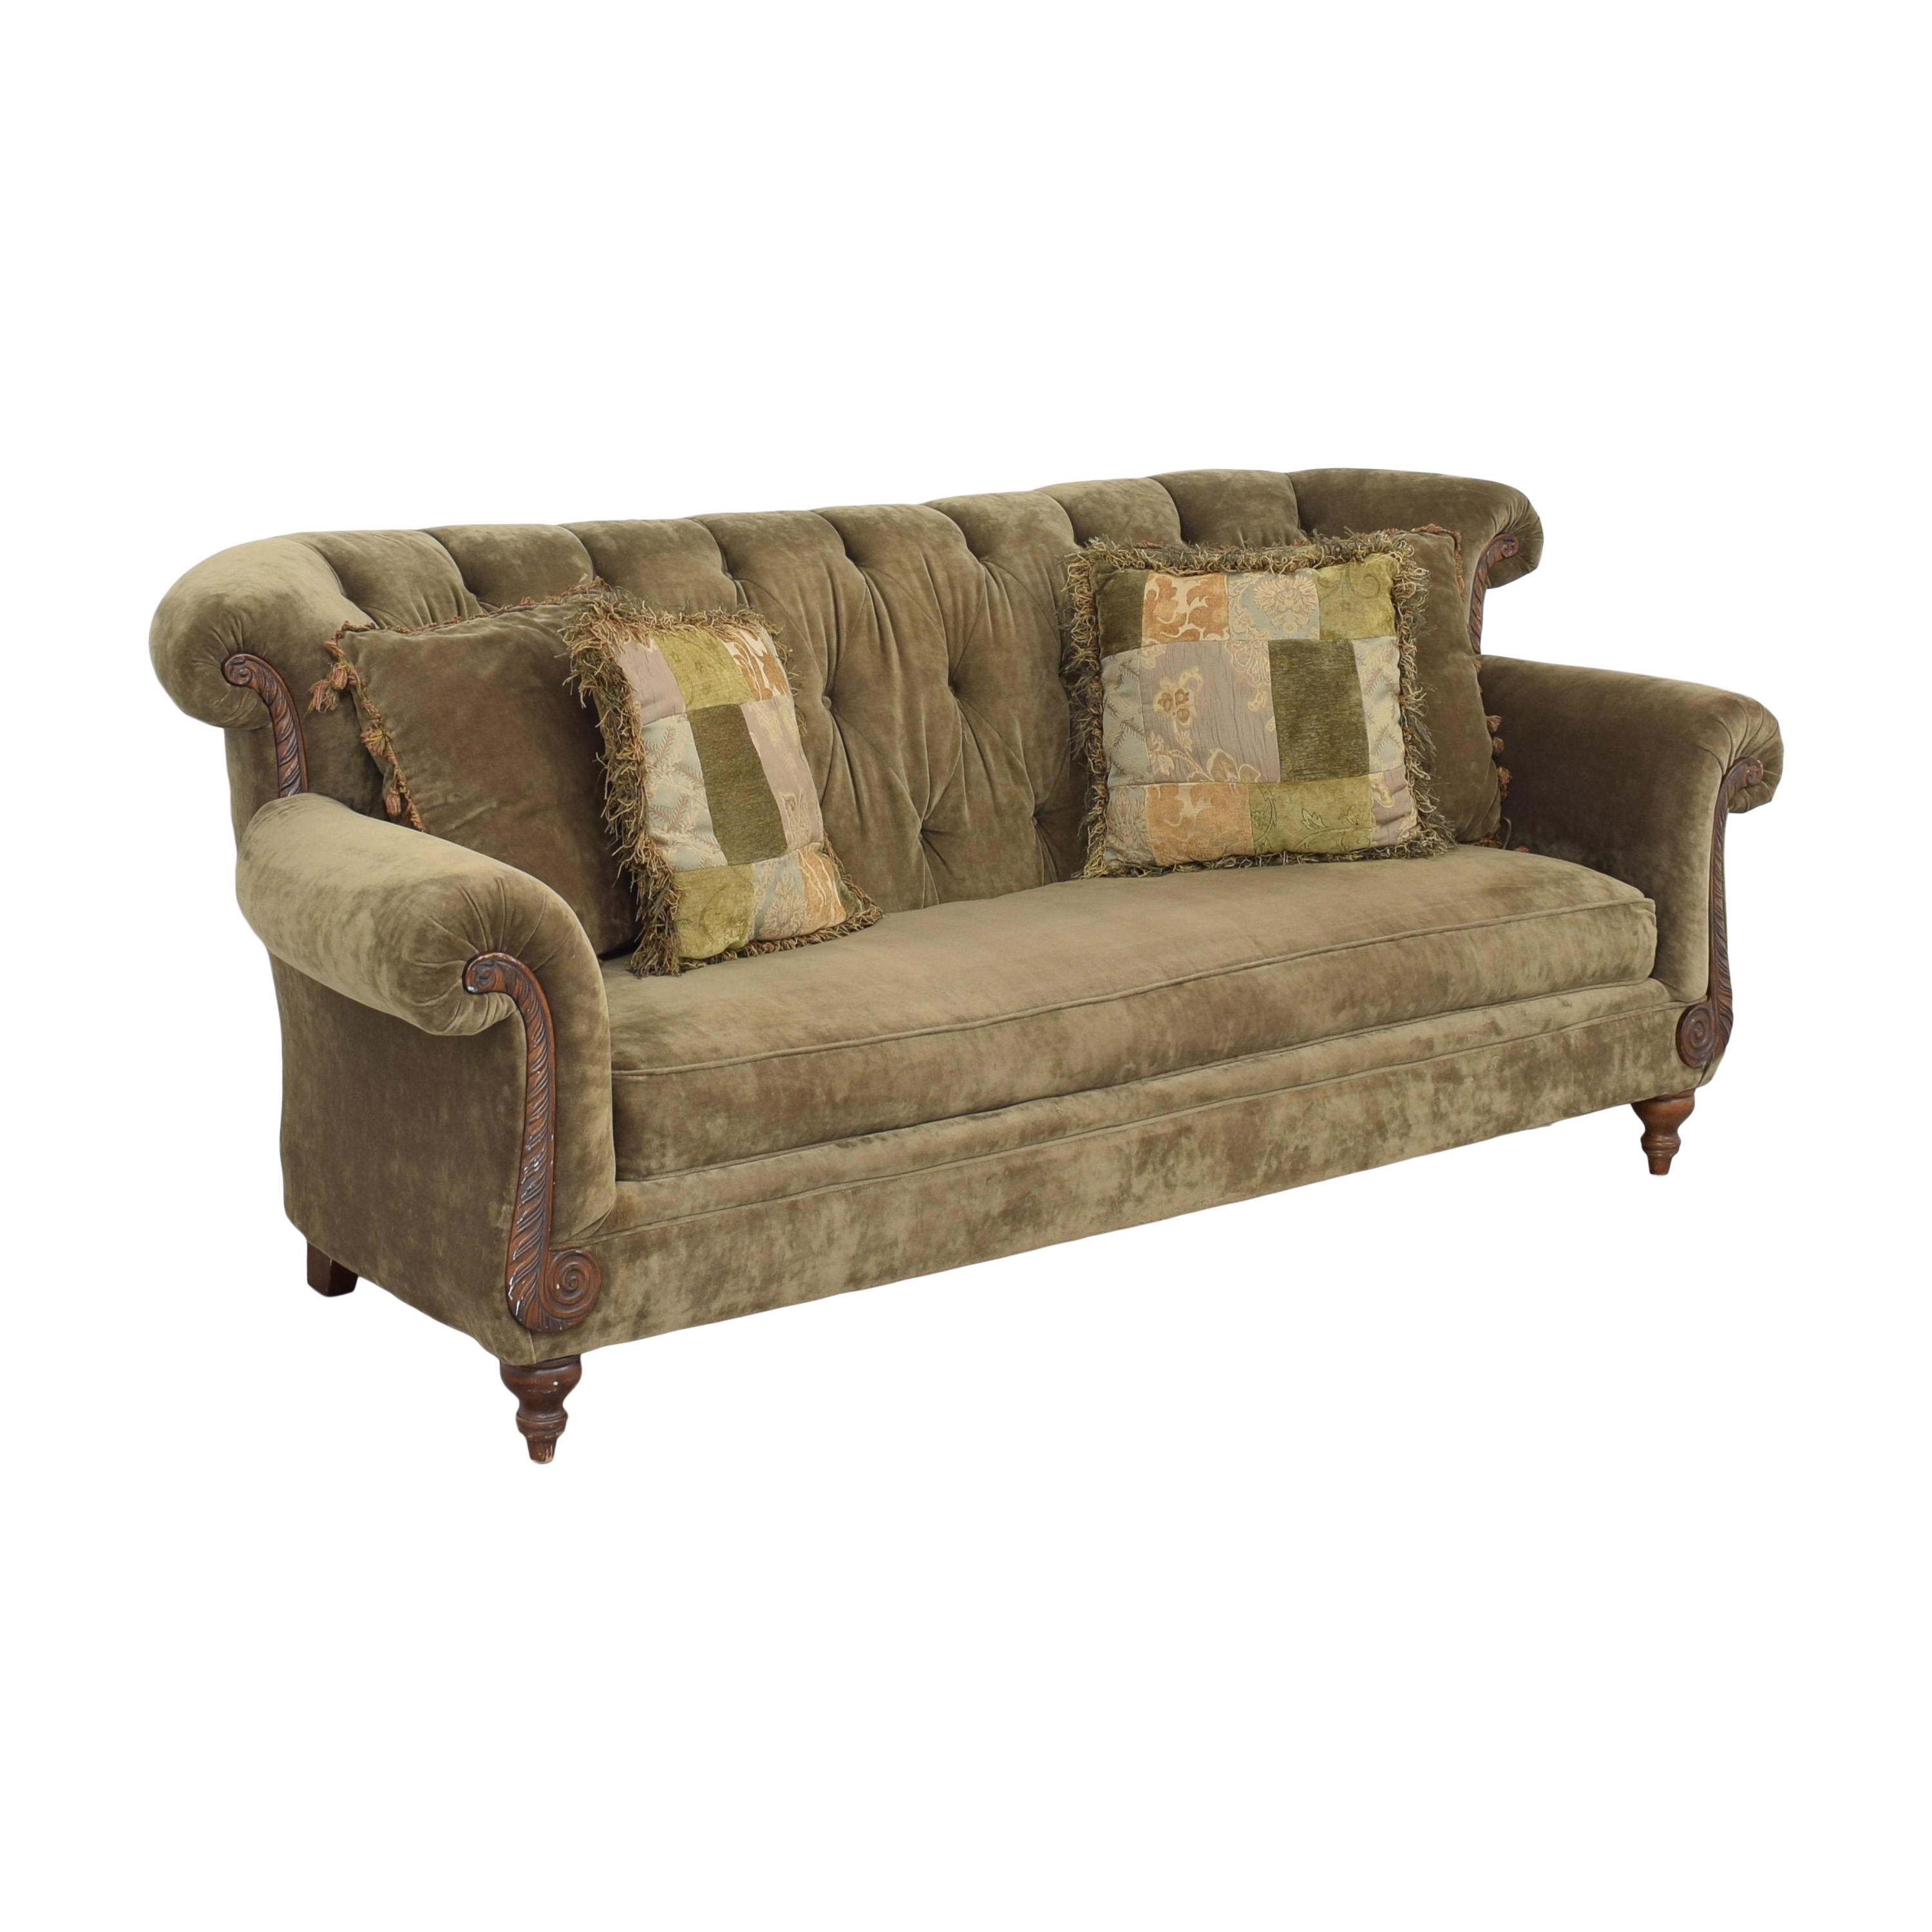 Domain Domain Chesterfield Sofa second hand